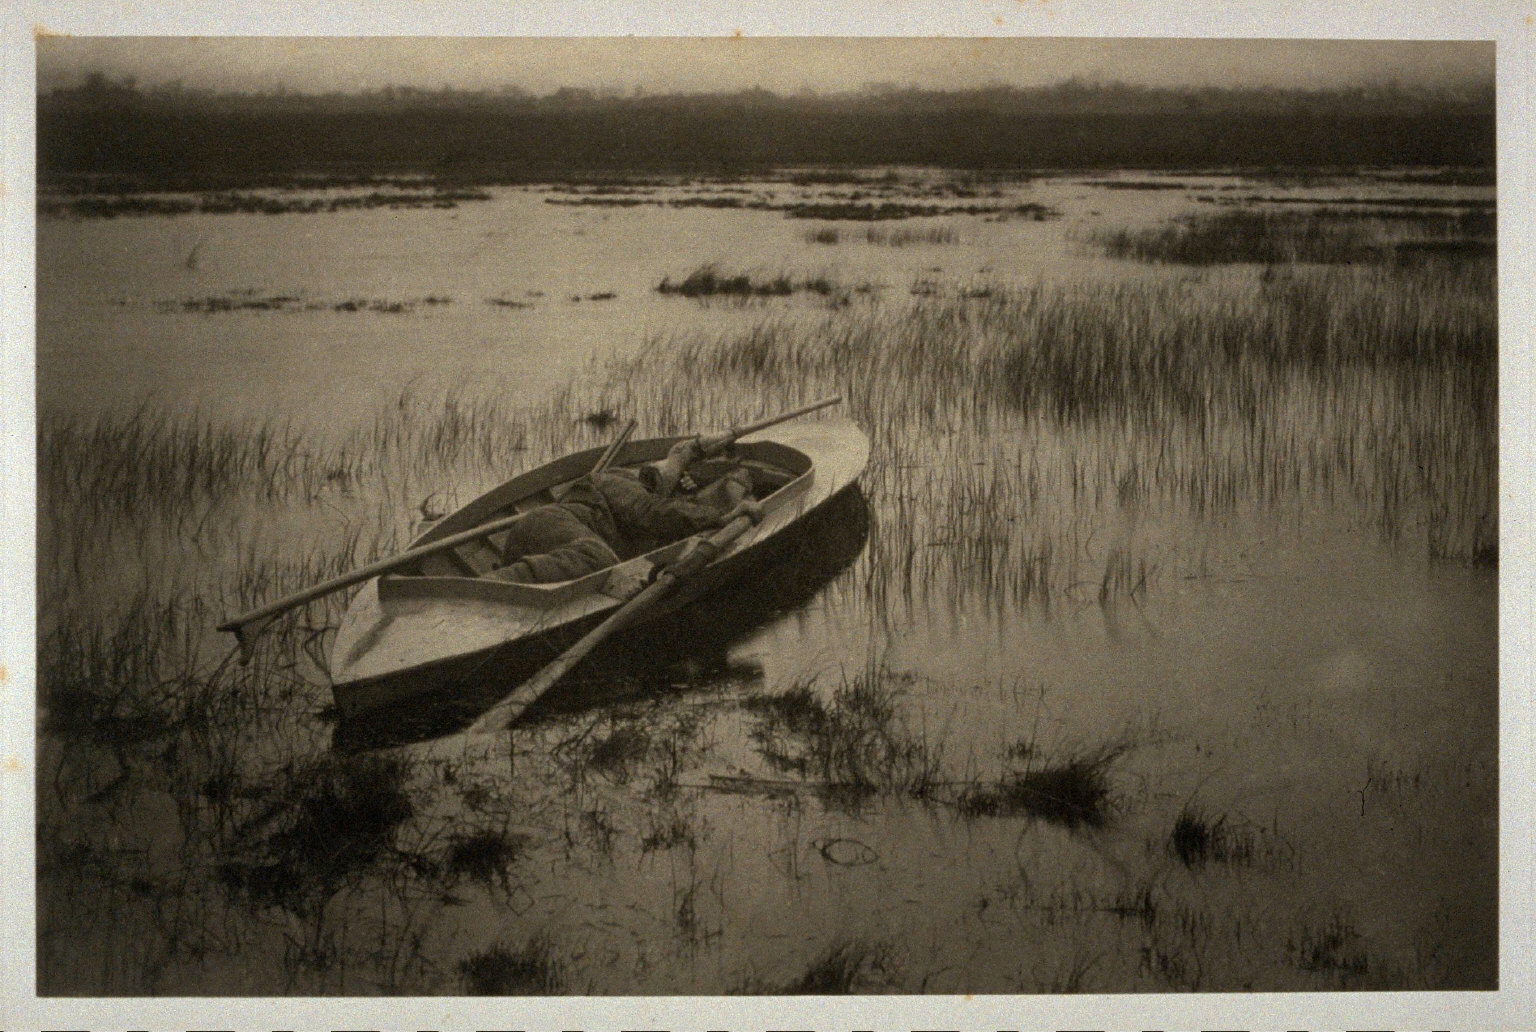 Gunner Working up to Fowl, Plate Nineteen of Life and Landscape on the Norfolk Broads